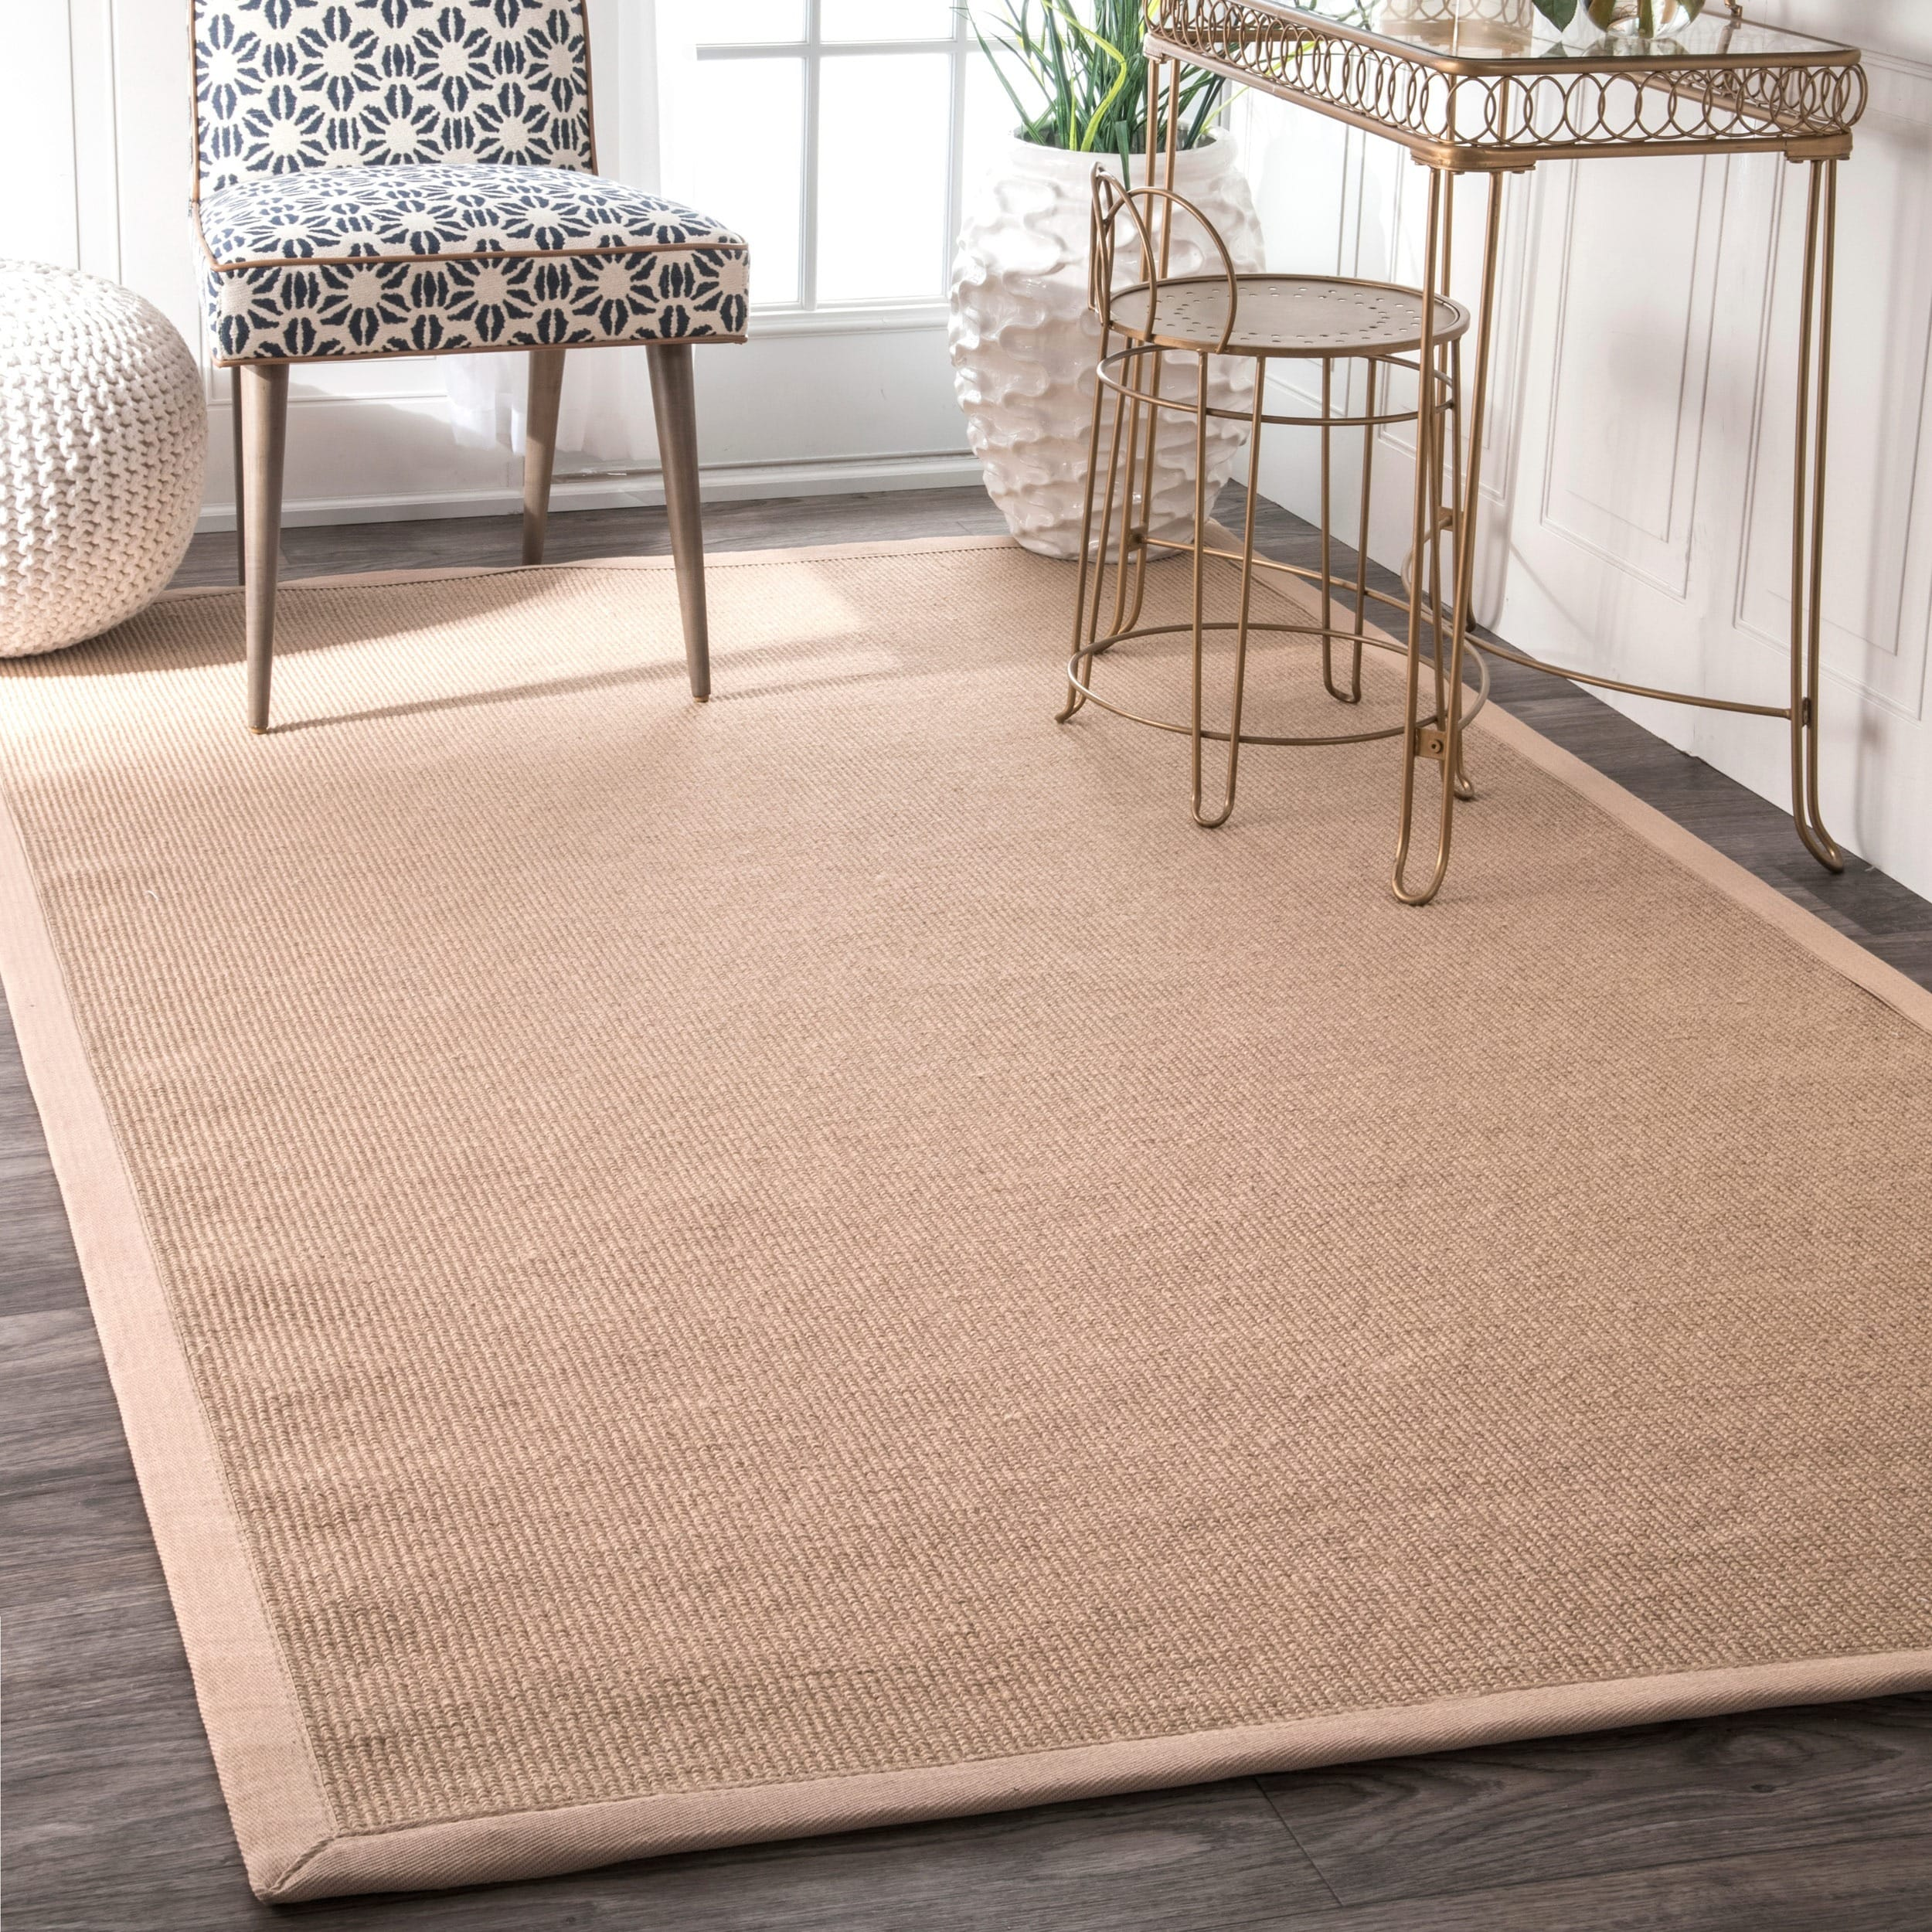 Havenside Home Lubec Handmade Eco Natural Fiber Cotton Border Jute Area Rug (9' x 12')